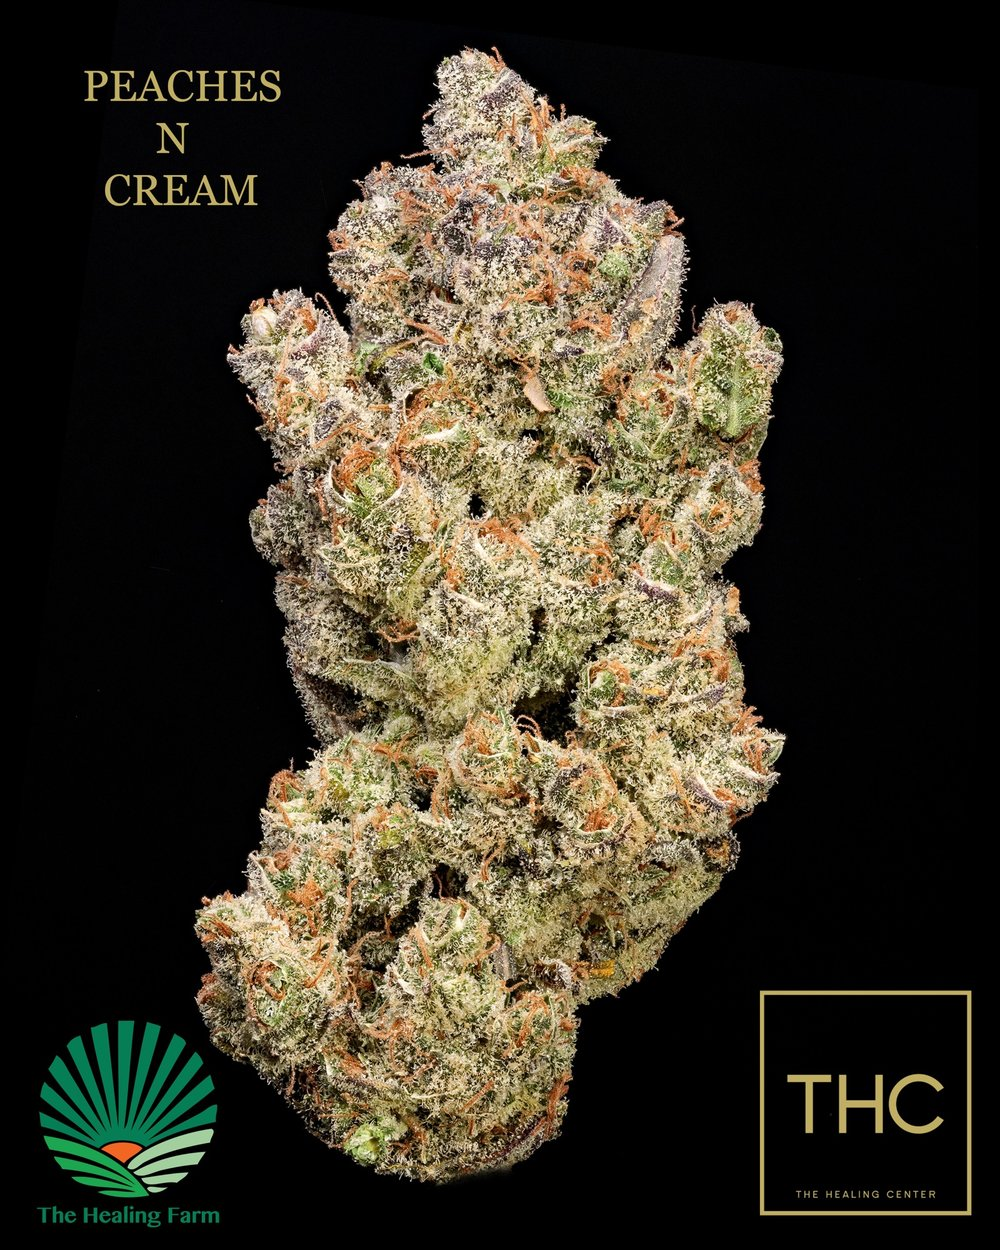 Peaches n Cream The Healing Farm THC.jpg